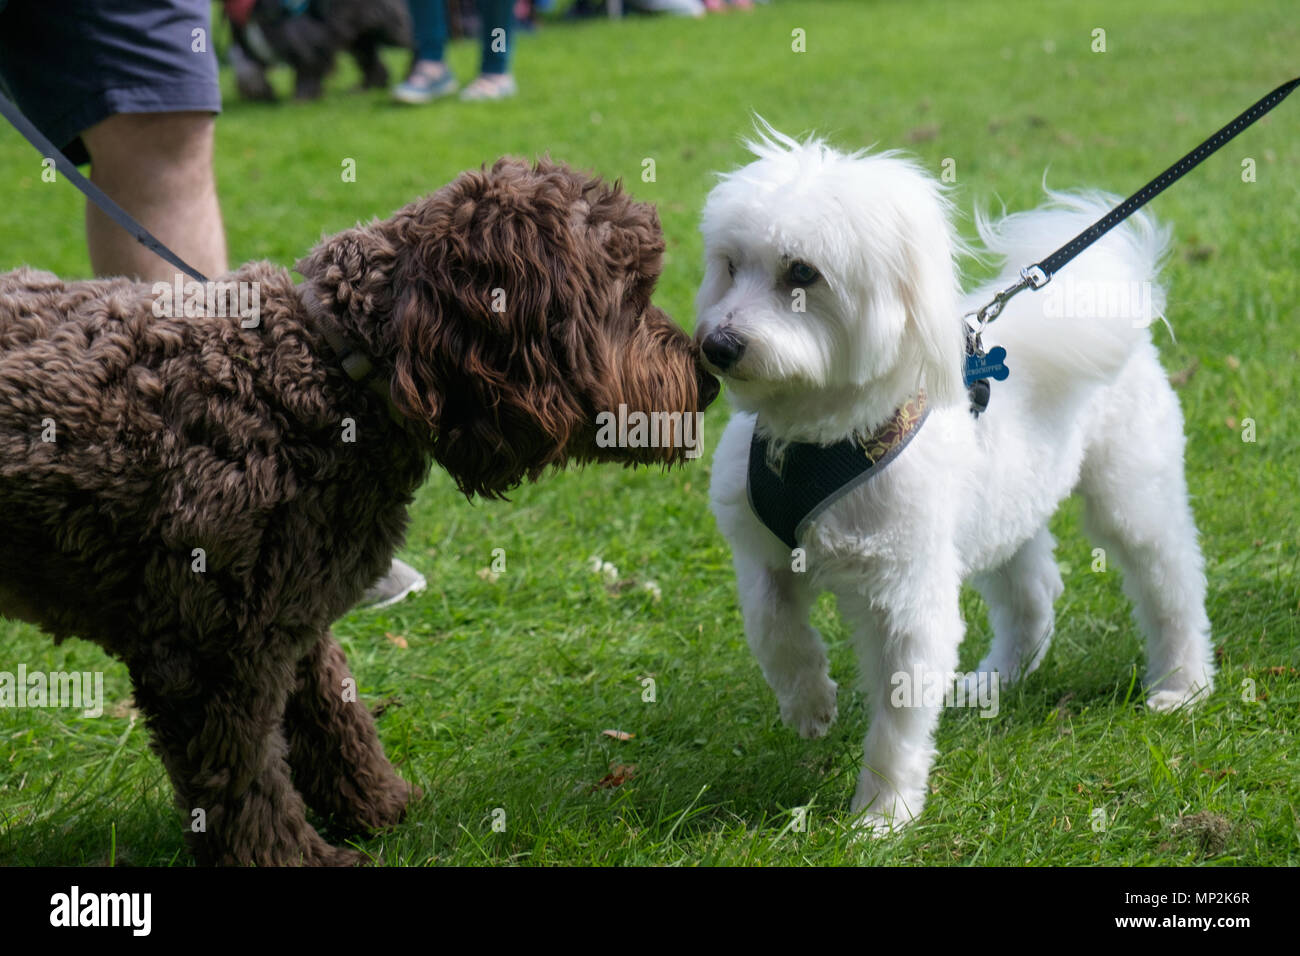 Black and white dogs affectionately rub noses at dog show in Canons Park, Edgware, North London, during annual Family Fun Day. Landscape. - Stock Image